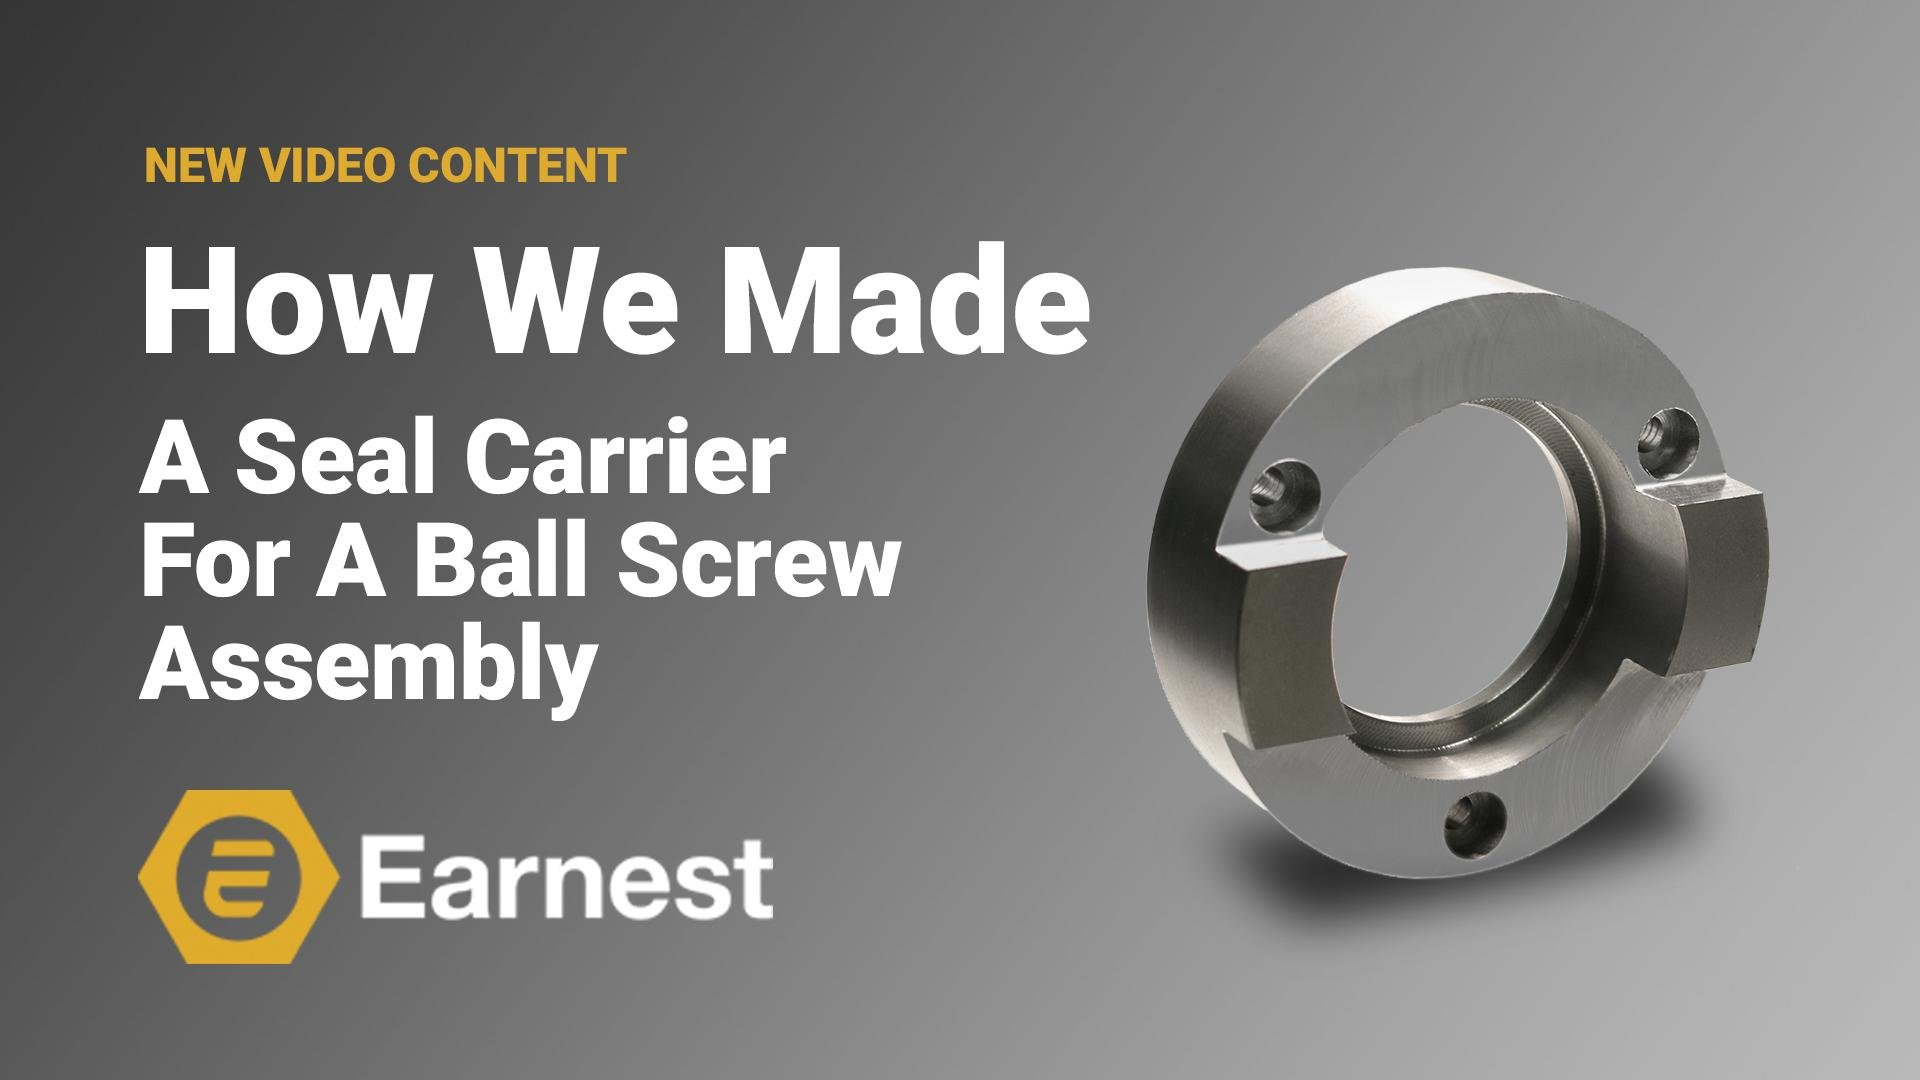 How We Made A Seal Carrier For A Ball Screw Assembly